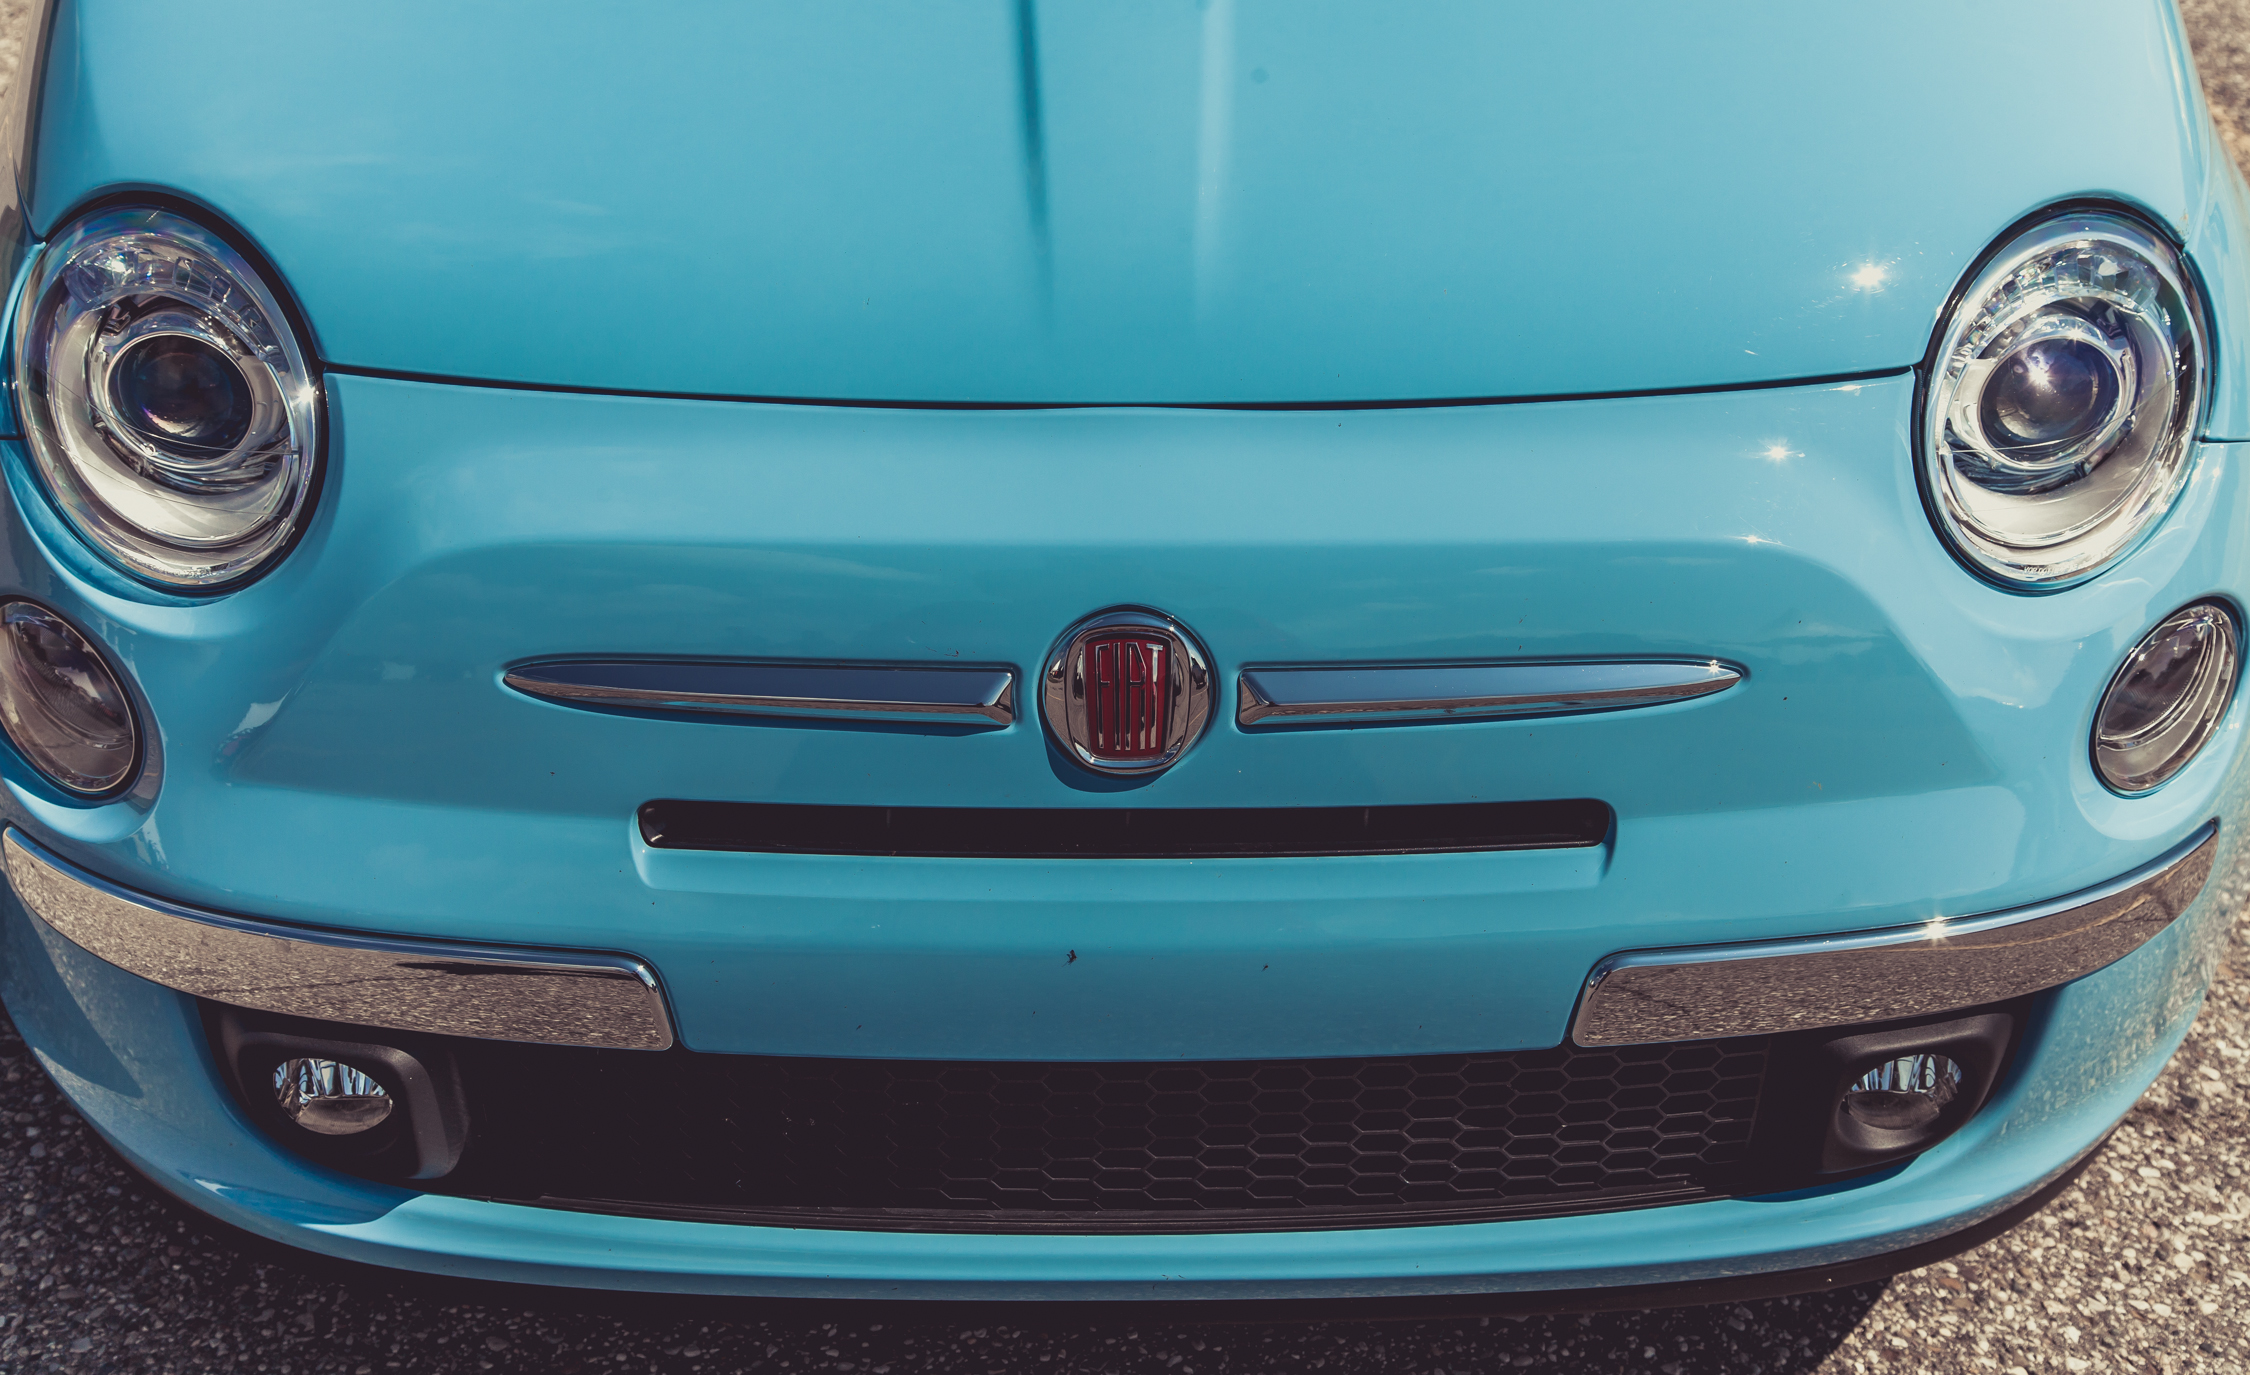 2014 Fiat 500 1957 Edition (View 8 of 12)